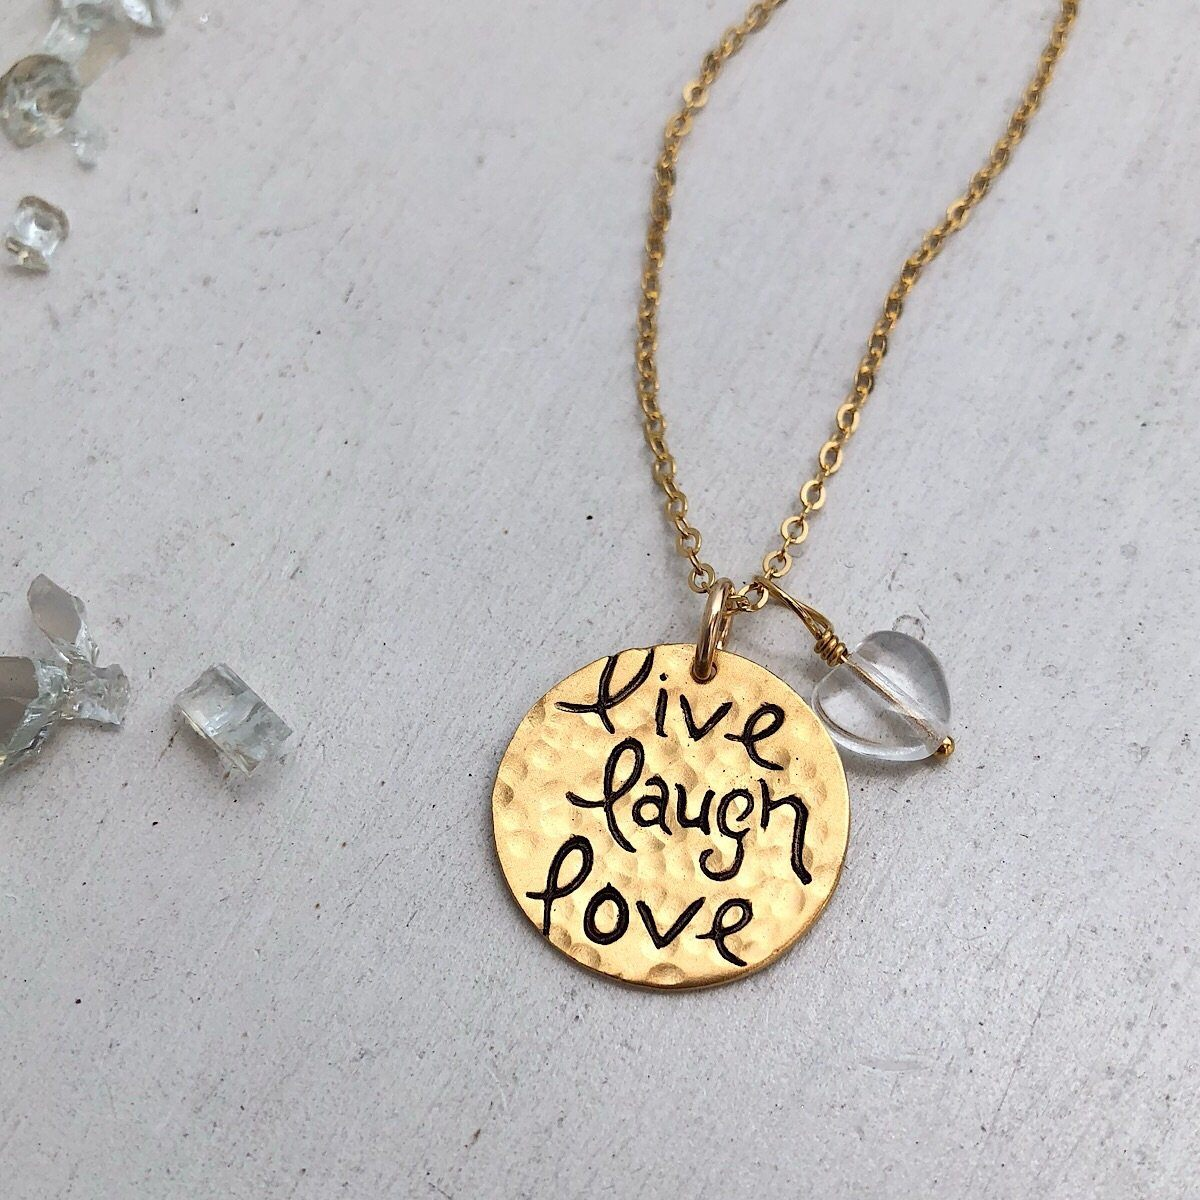 Live Laugh Love - IsabelleGraceJewelry